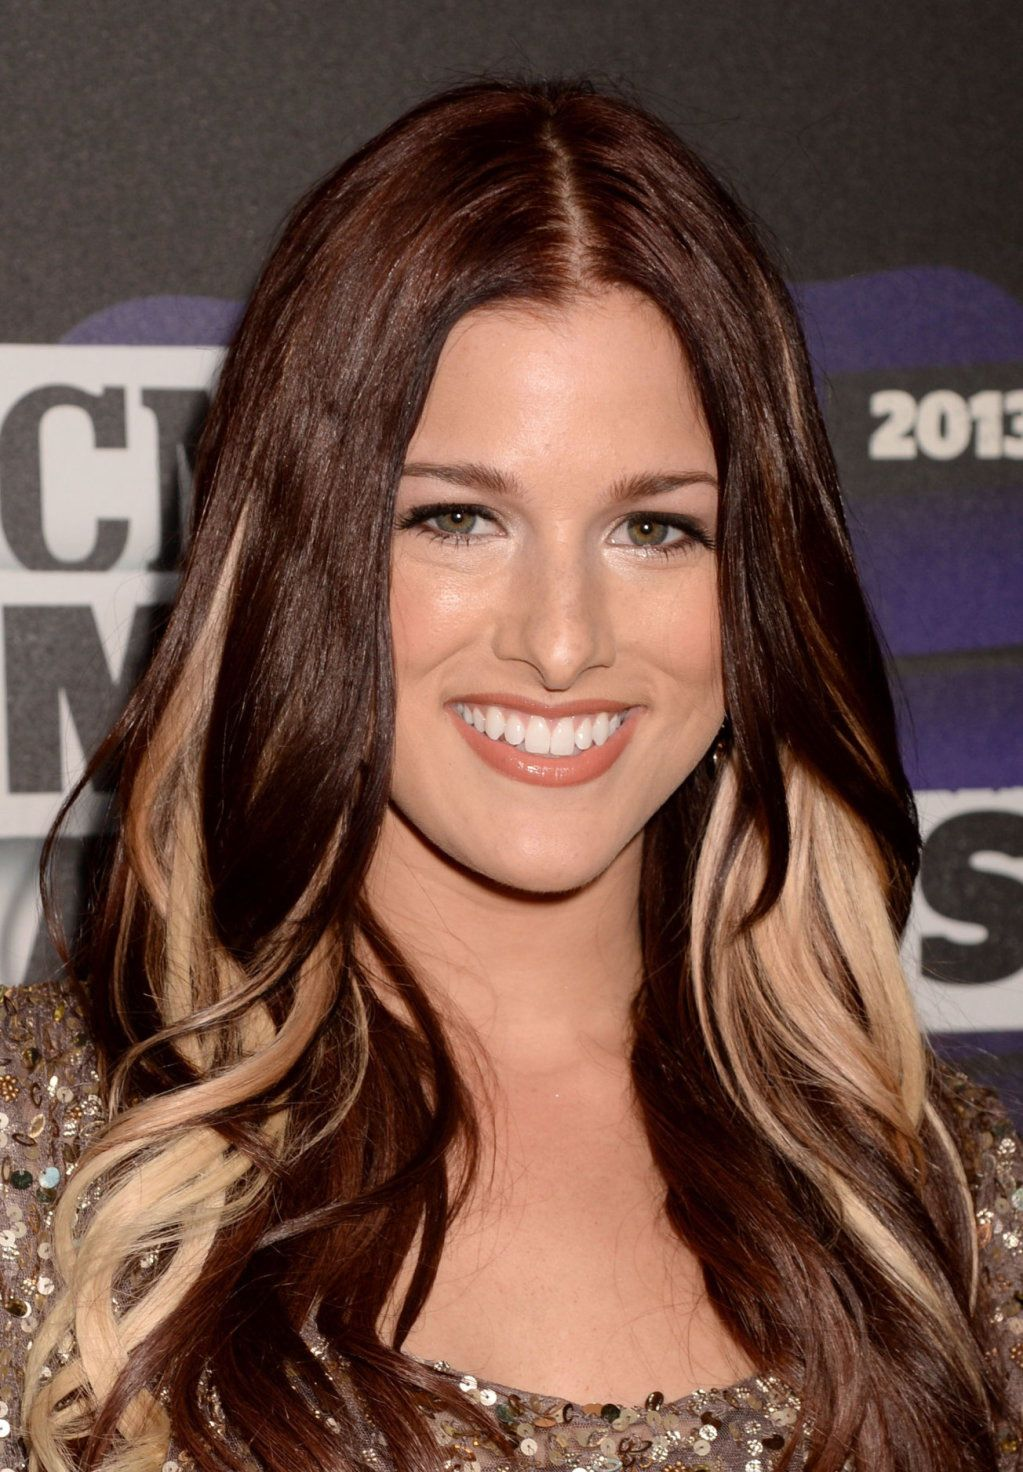 Cassadee Pope Ive Followed Her Since Hey Monday People